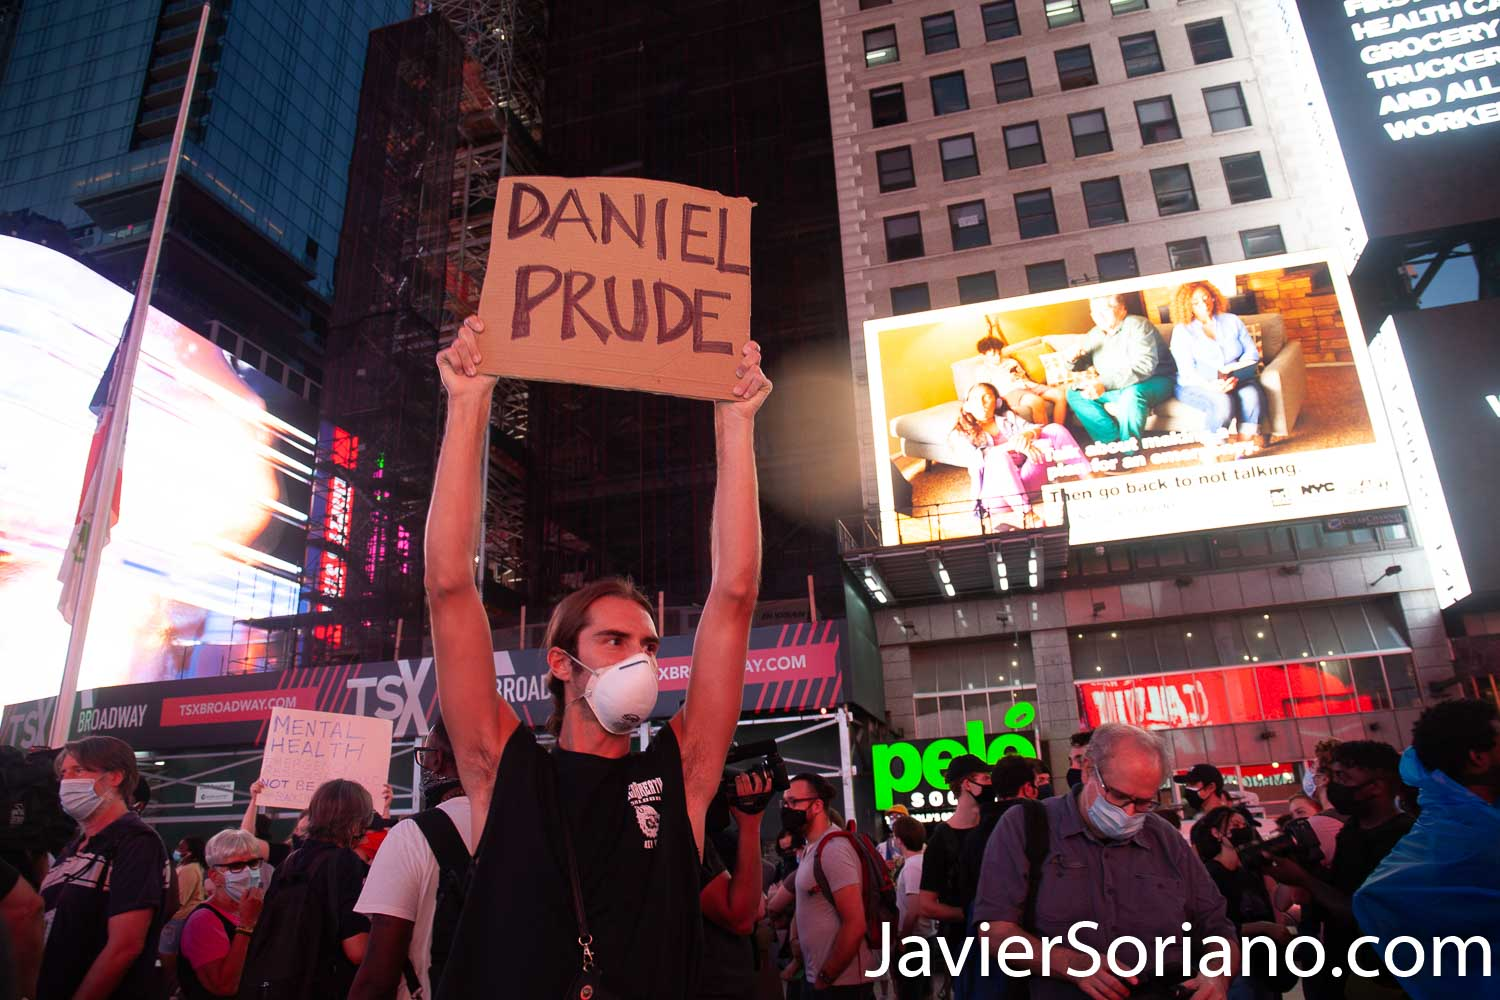 Thursday, September 3, 2020. Manhattan, New York City – Protesters in Times Square demand justice for Daniel Prude. Daniel was a Black man killed by police officers in Rochester, New York, in March, 2020. Photo by Javier Soriano/www.JavierSoriano.com